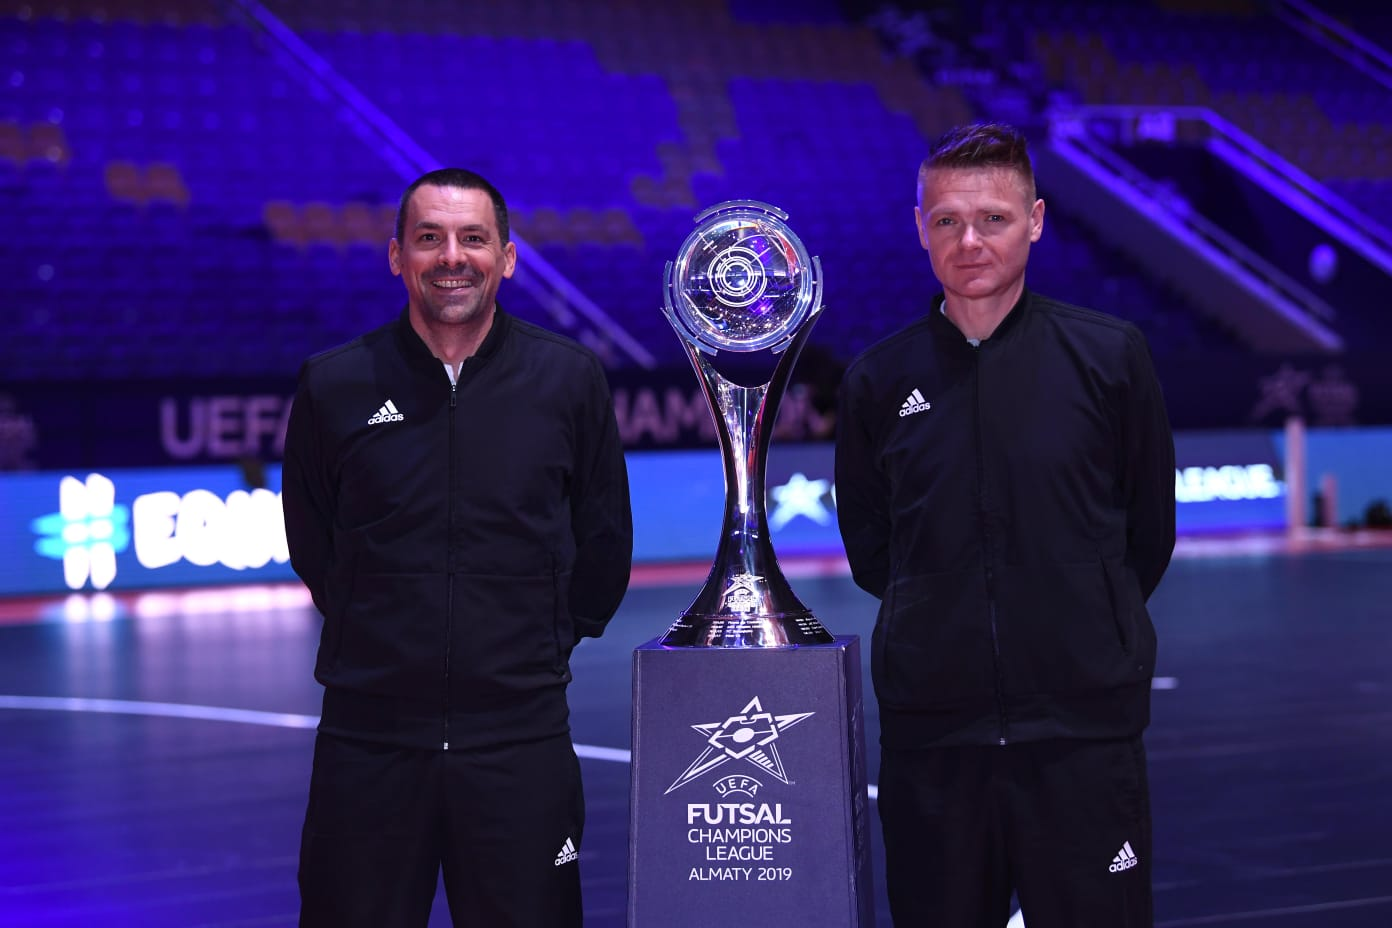 """HNS on Twitter: """"🇭🇷 #Croatia referees Saša Tomić and Nikola Jelić  appointed for the #UCLFutsal Sunday final! 🏆 @Sporting_CP🇵🇹 vs.  @afckairat🇰🇿 #BeProud #Family… https://t.co/lK5HqI97lw"""""""